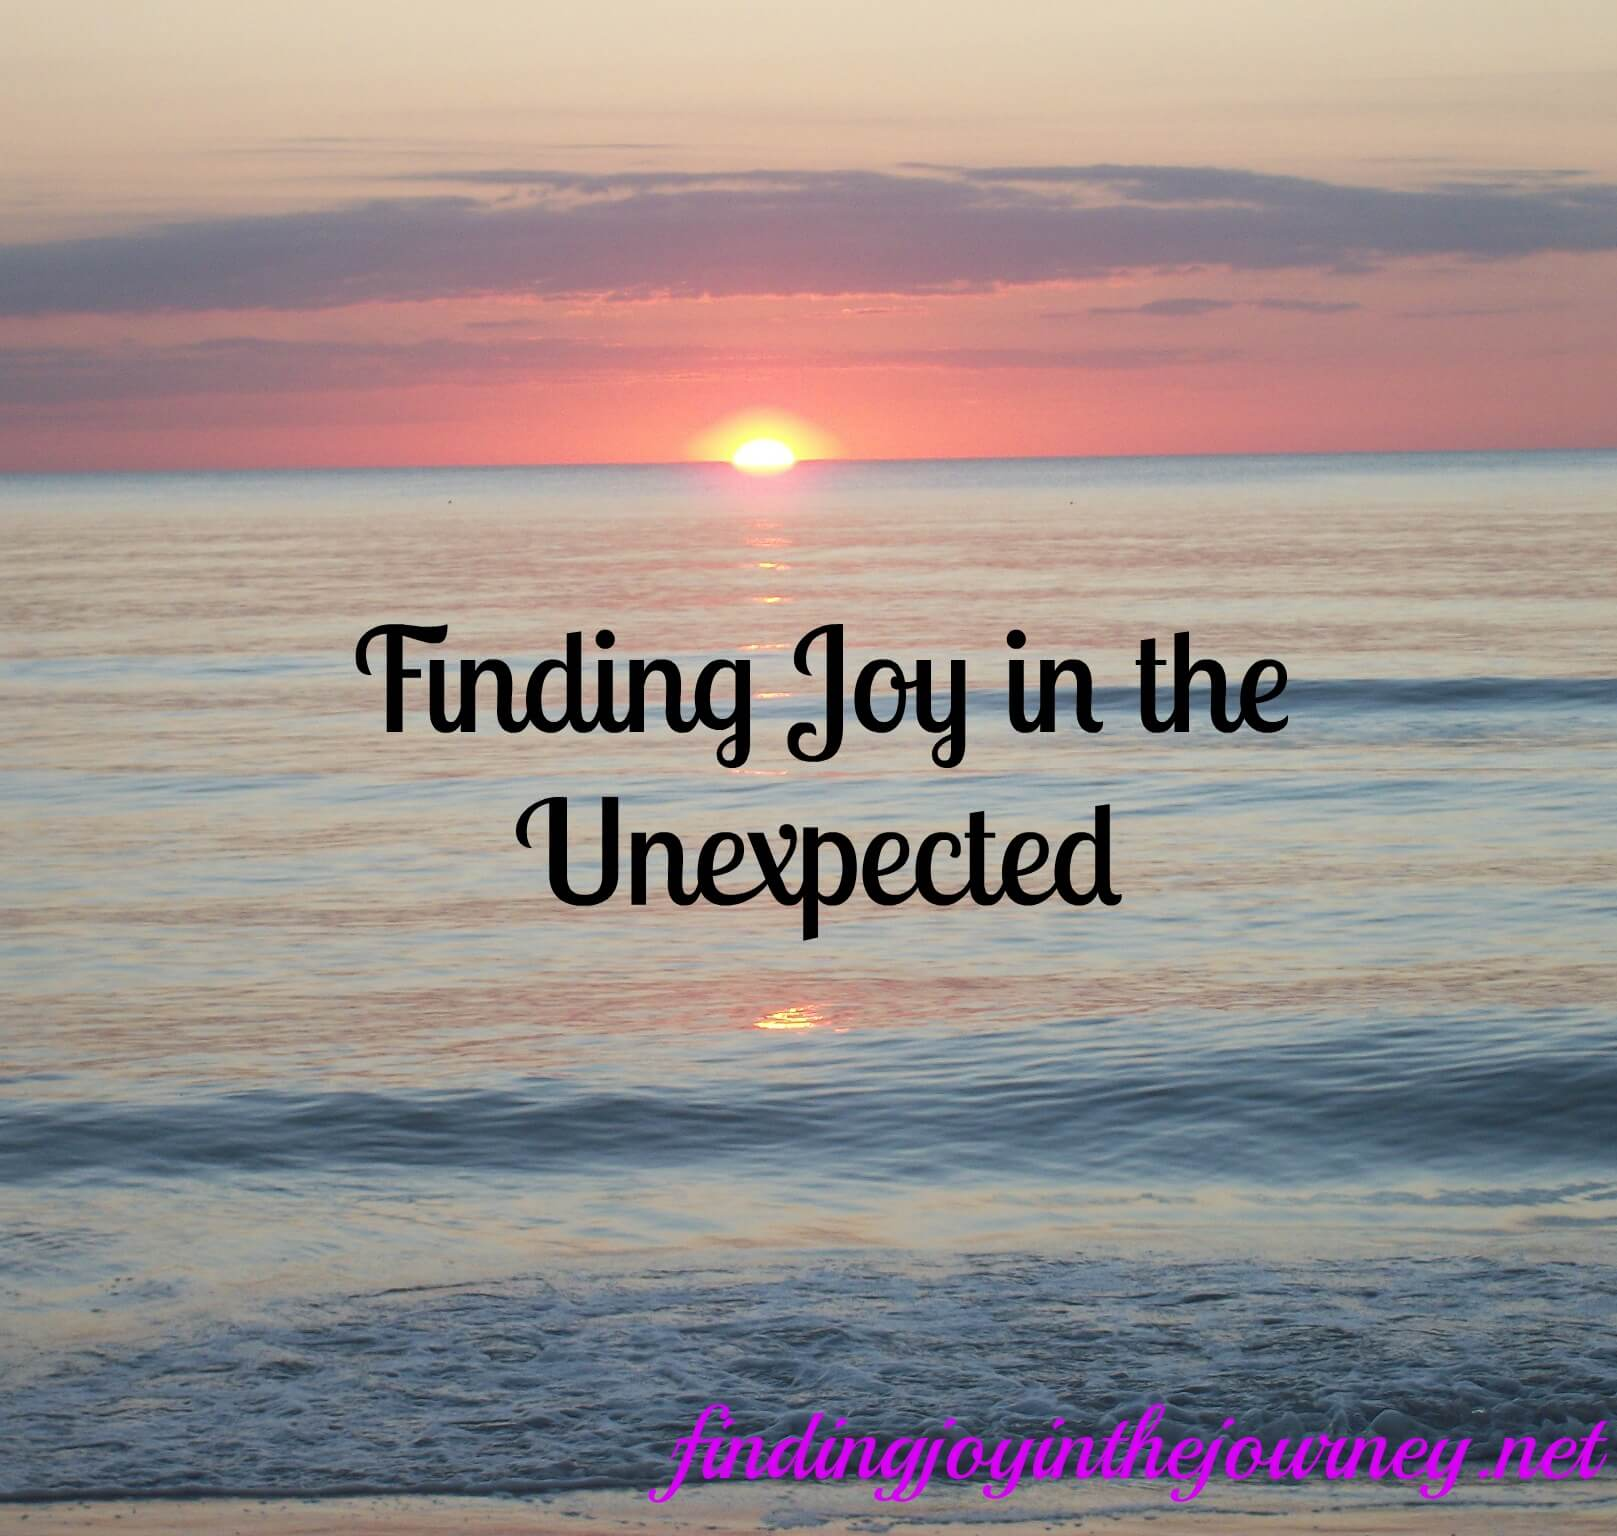 Finding Joy in the Unexpected